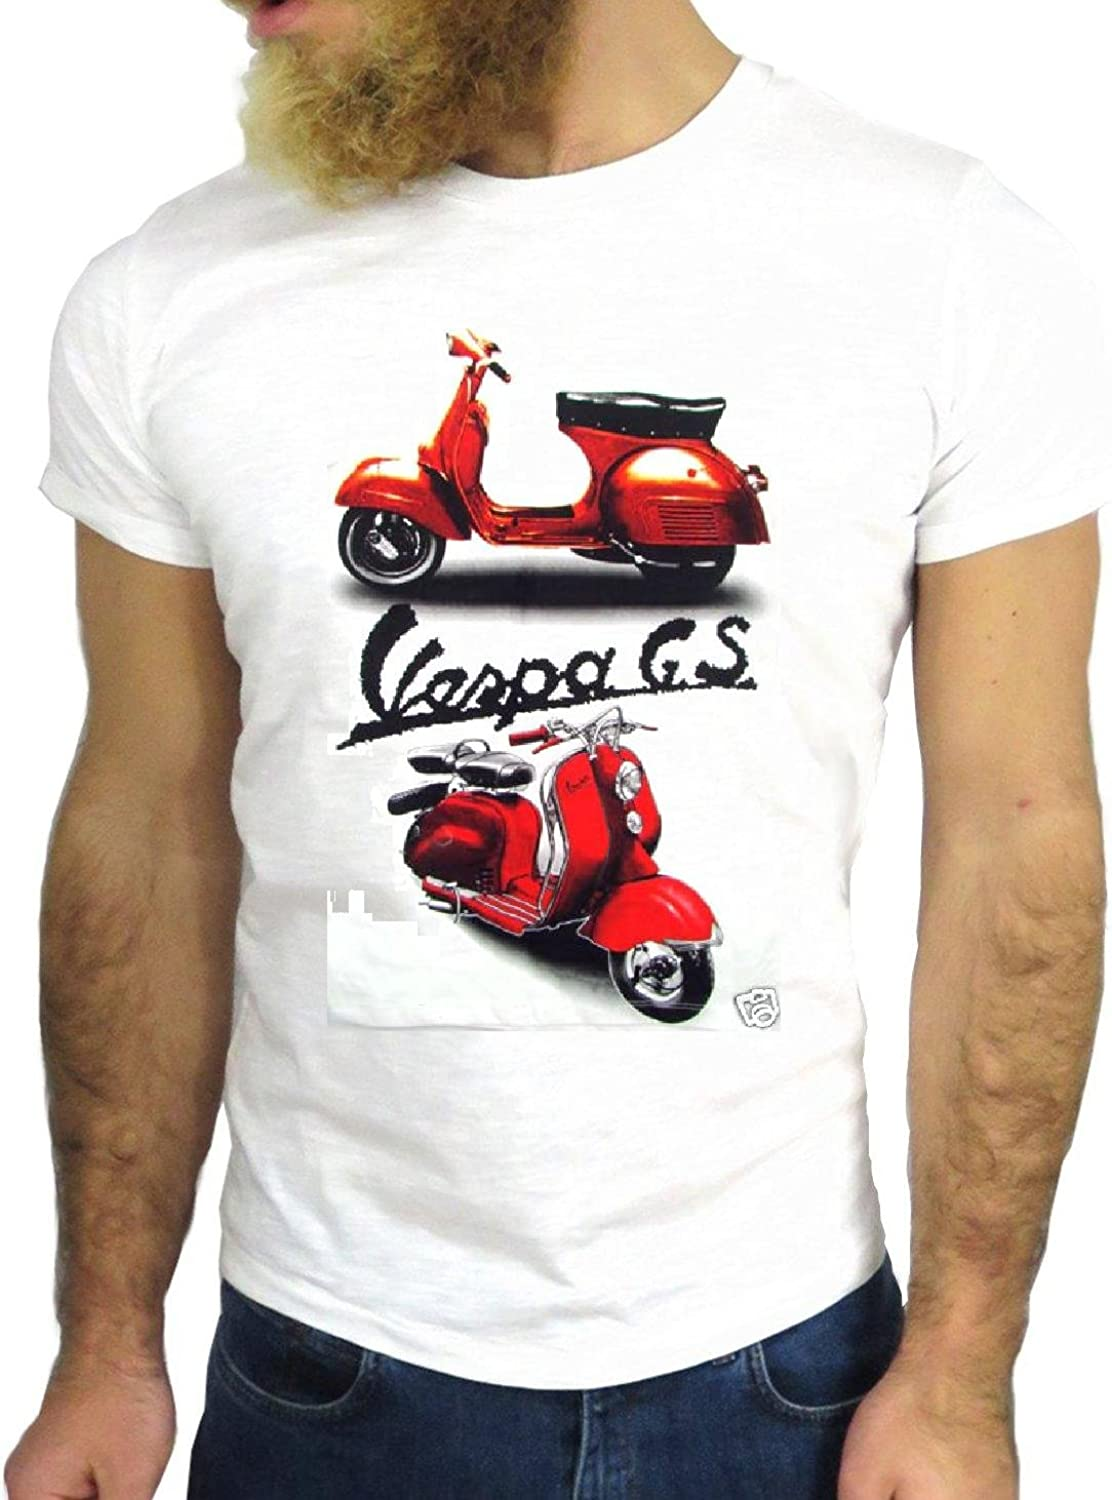 T SHIRT JODE Z2355 VESPA COOL ROCK VINTAGE GS GA MADE IN ITALY SCOOTER ROCK GGG24 BIANCA - WHITE XL: Amazon.es: Ropa y accesorios